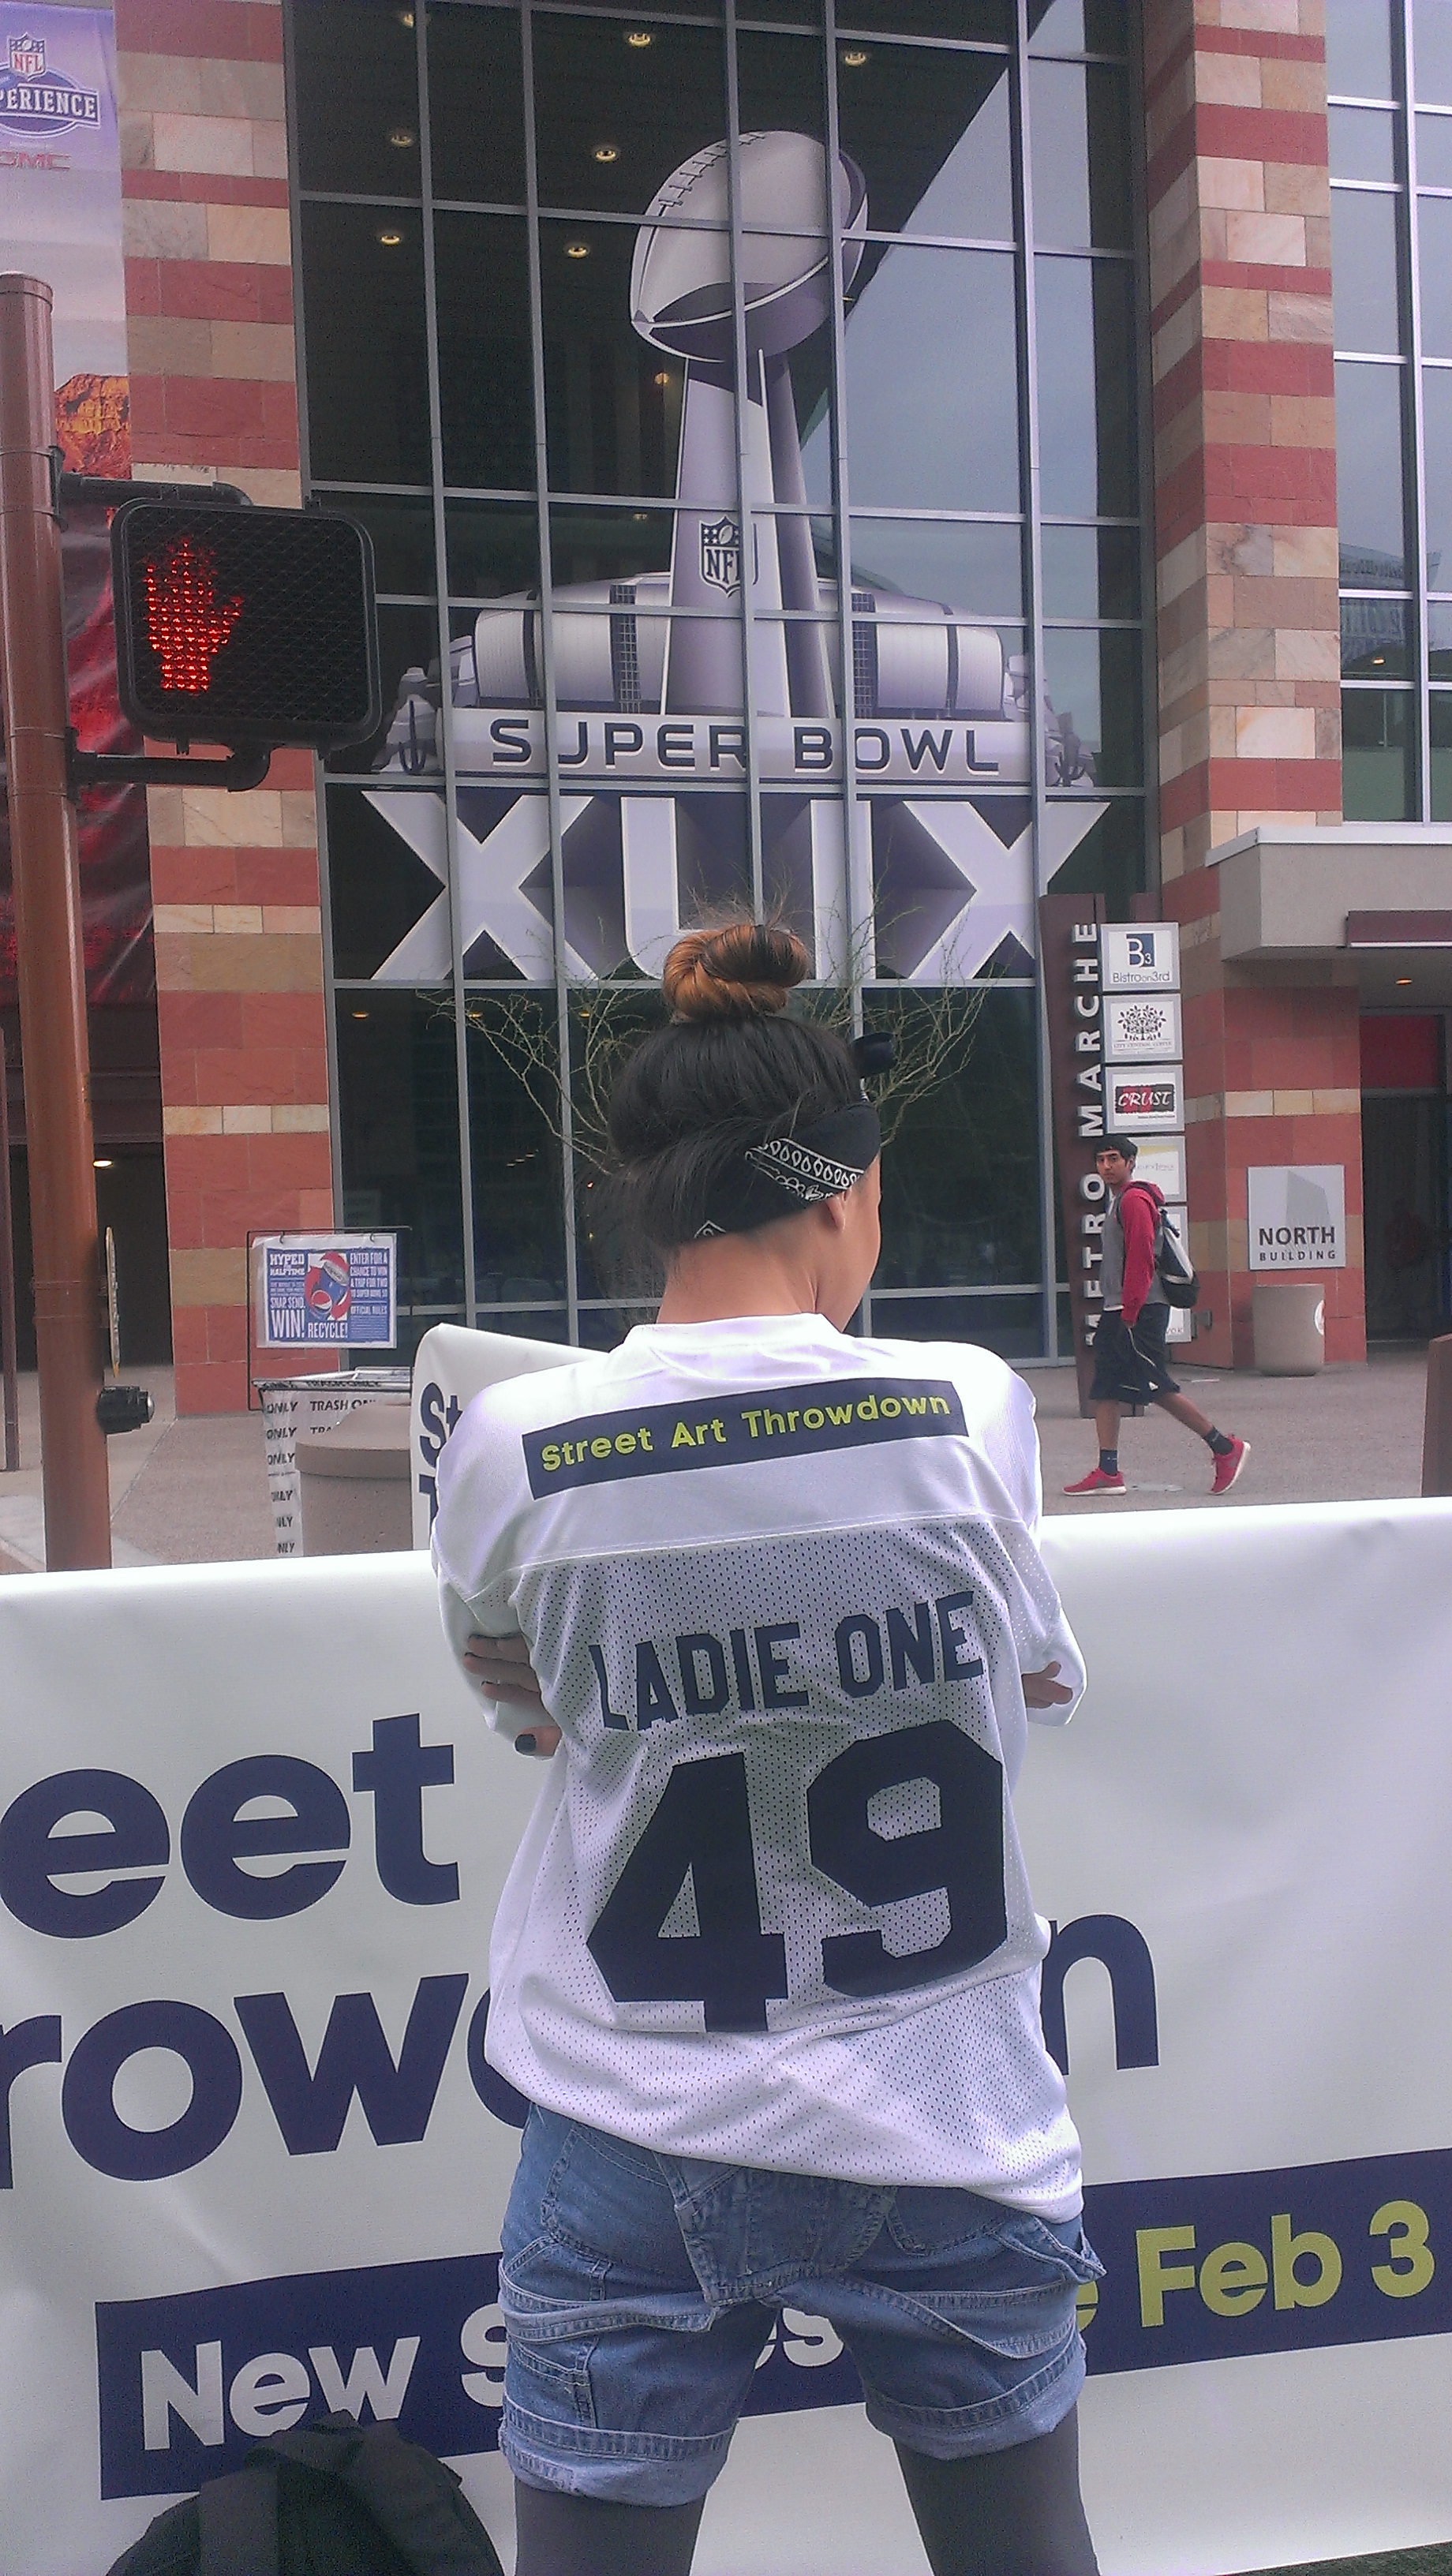 LADIE ONE AT SUPER BOWL 49